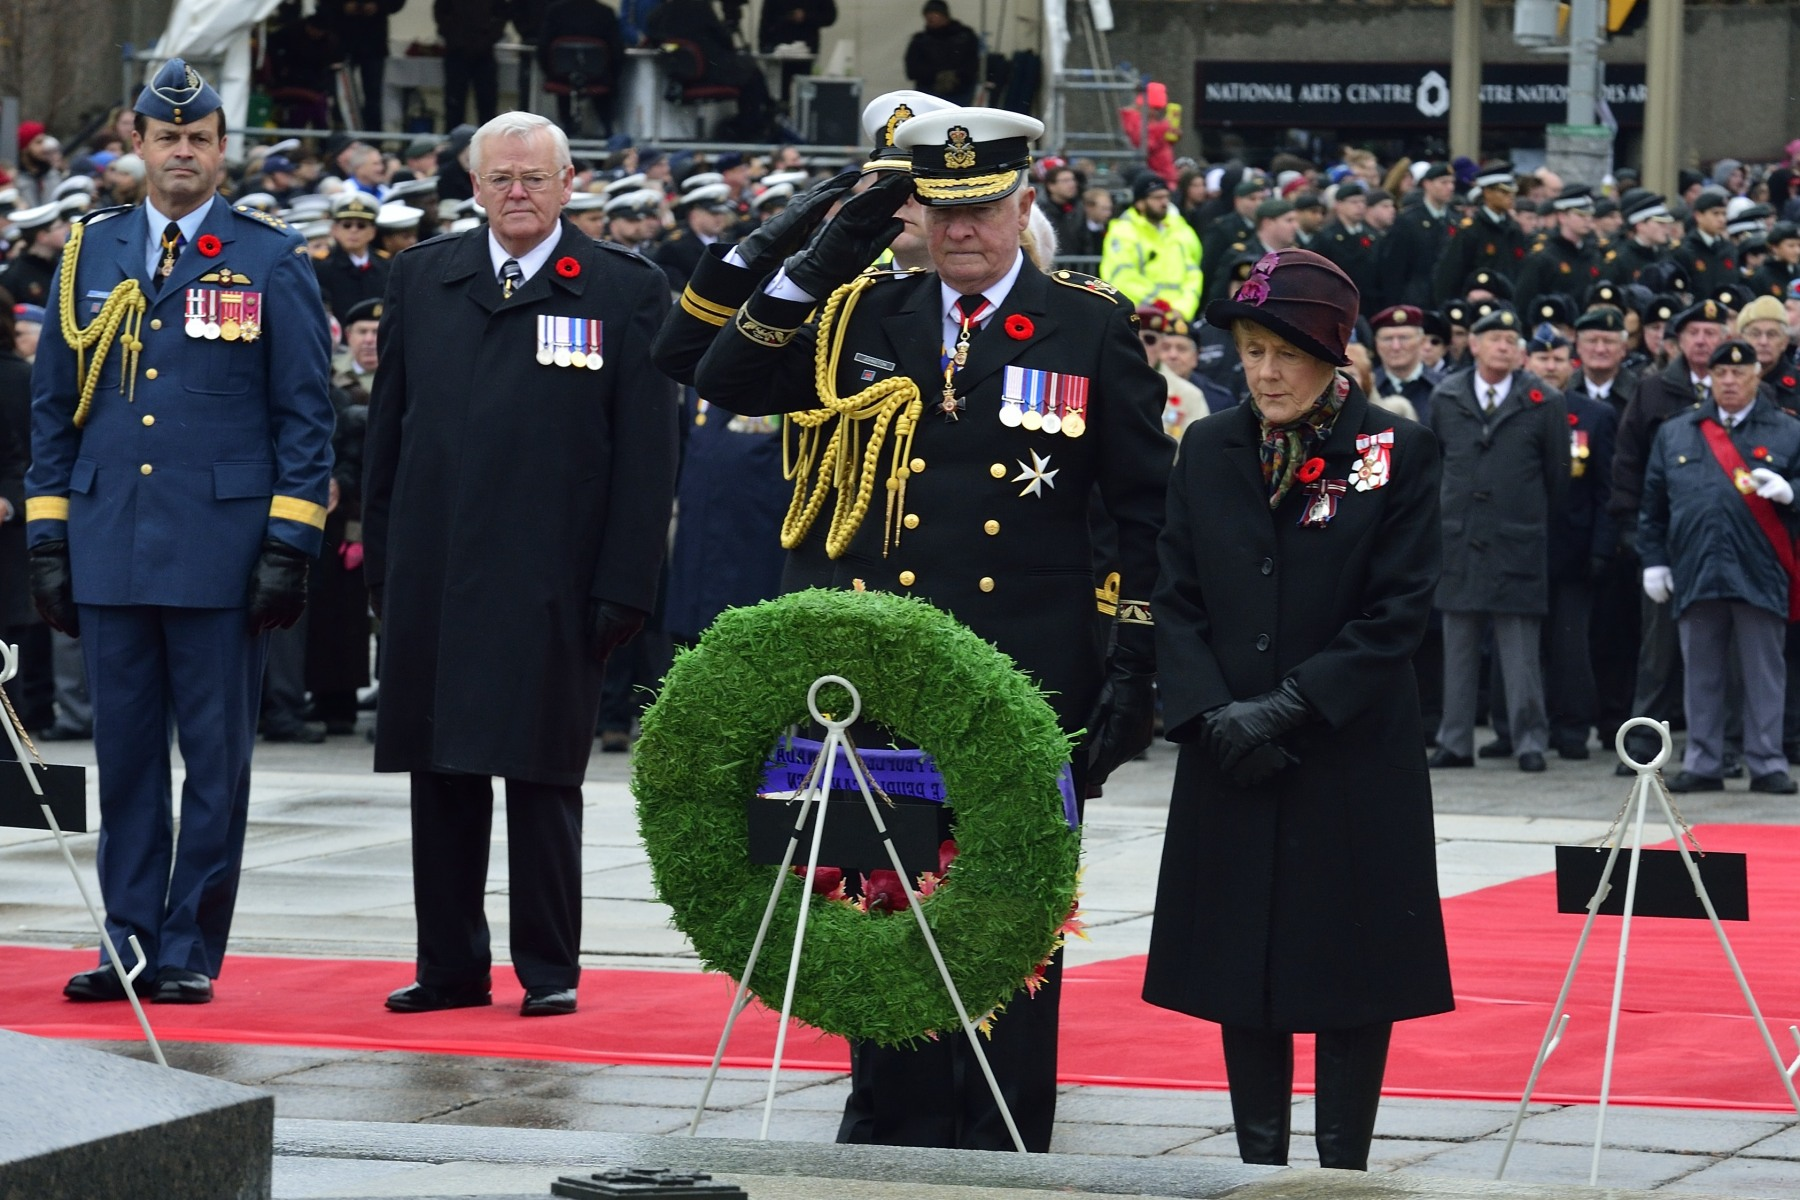 Their Excellencies laid a wreath at the Tomb of the Unknow Soldier, on behalf of the people of Canada.